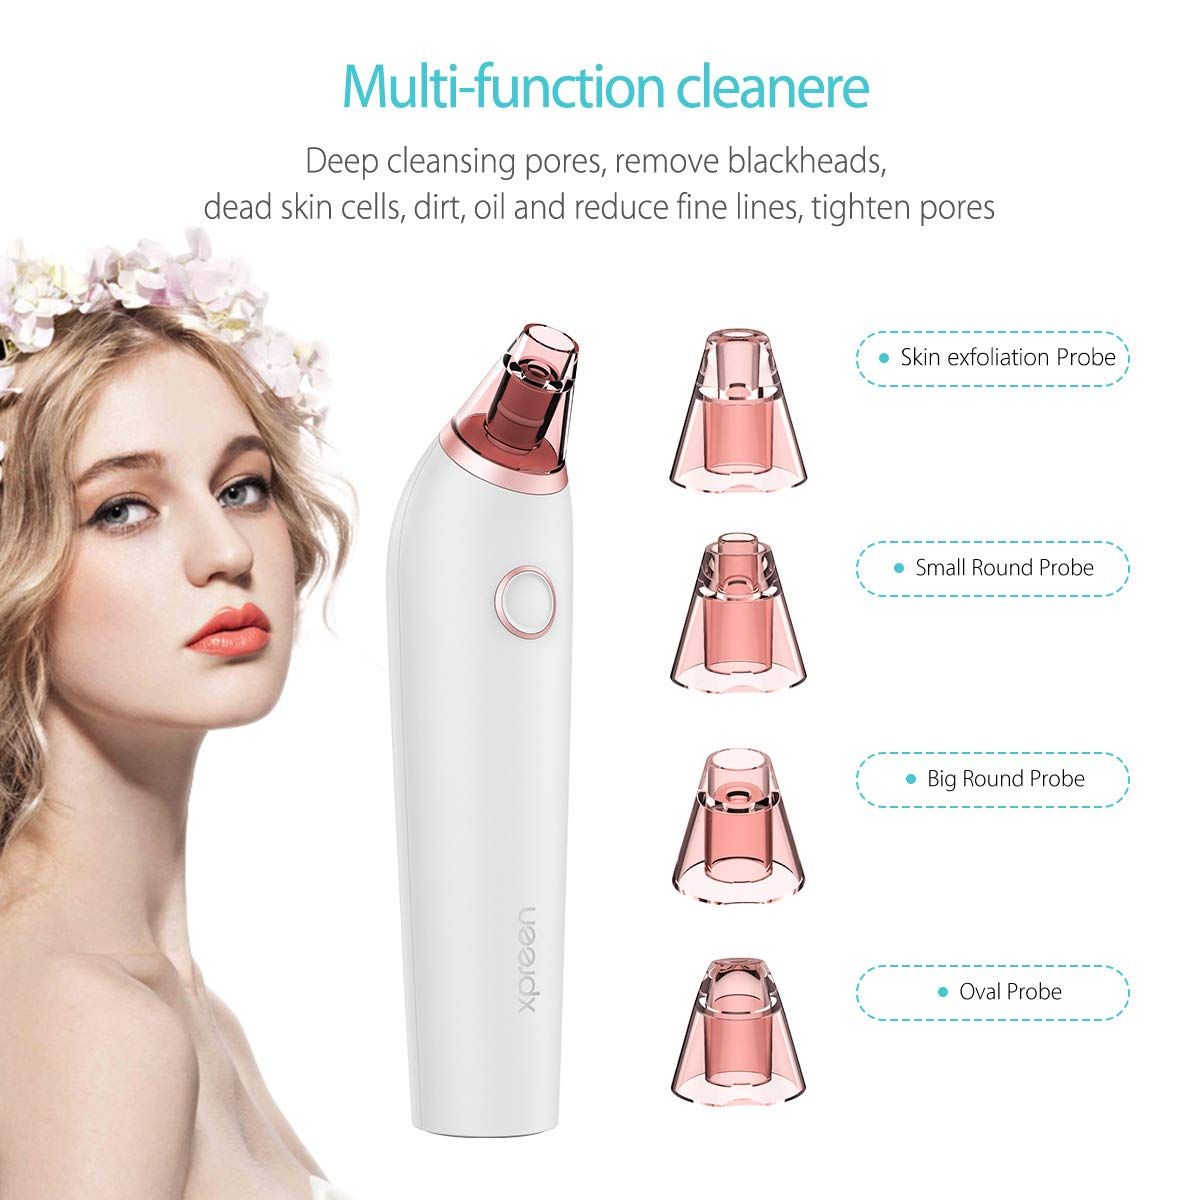 Blackhead Remover, Xpreen Pore Vacuum with 4 Multi-Functional Probe, Pore Cleaner for Acne,Fett Facial Blackhead Vacuum White